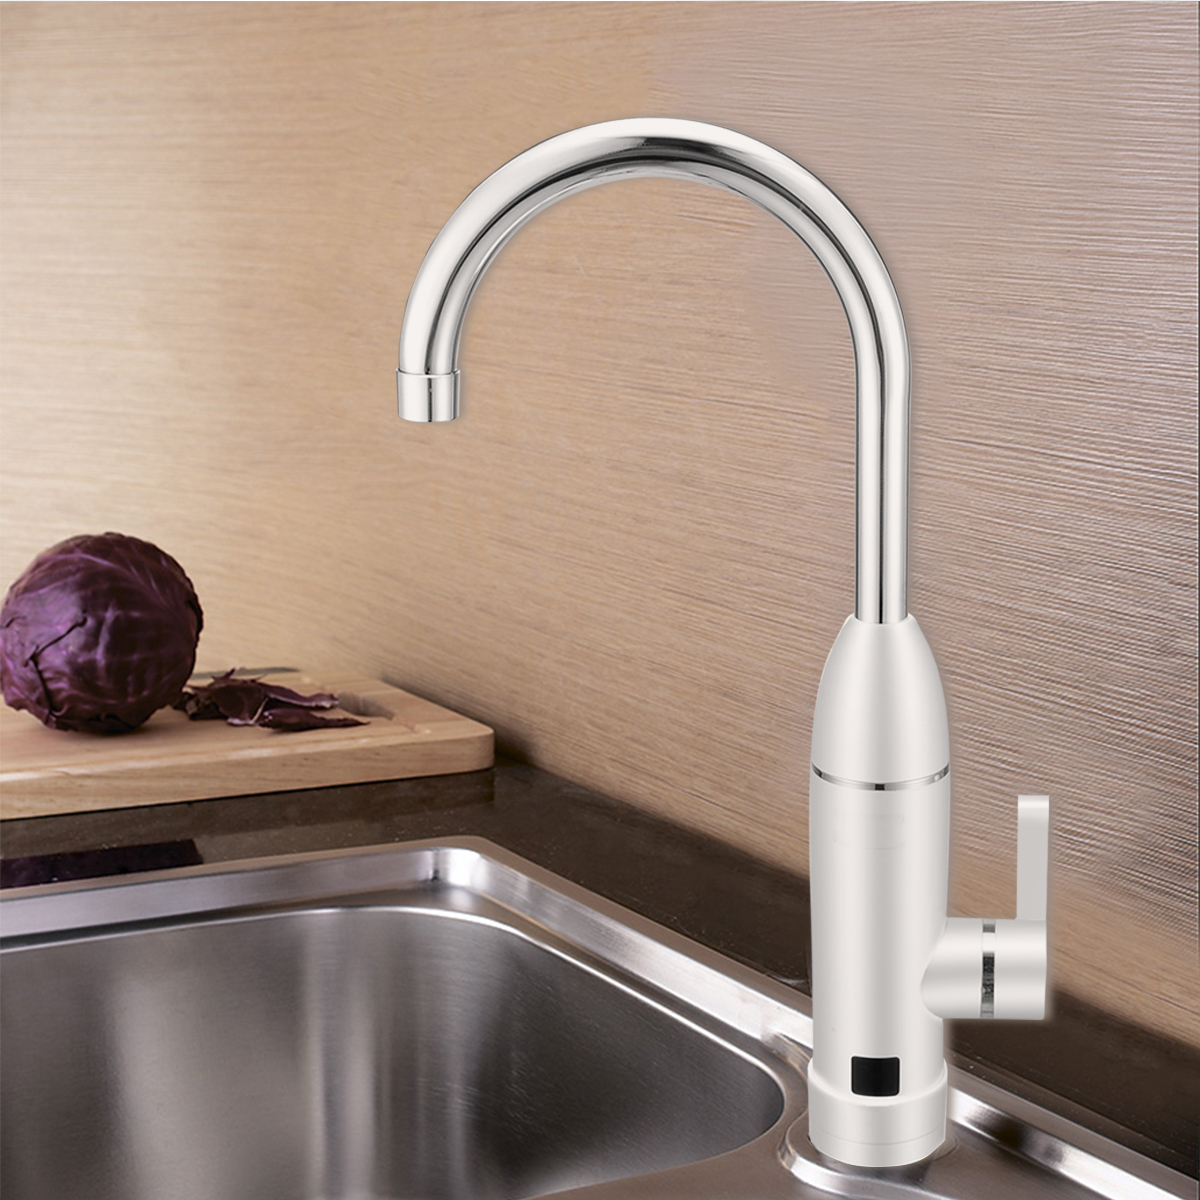 Mayitr Instant Electric Water Faucet Kitchen LED Display Electric Hot Cold Water Tap Tankless Heating Mixer Basin Tap For Home